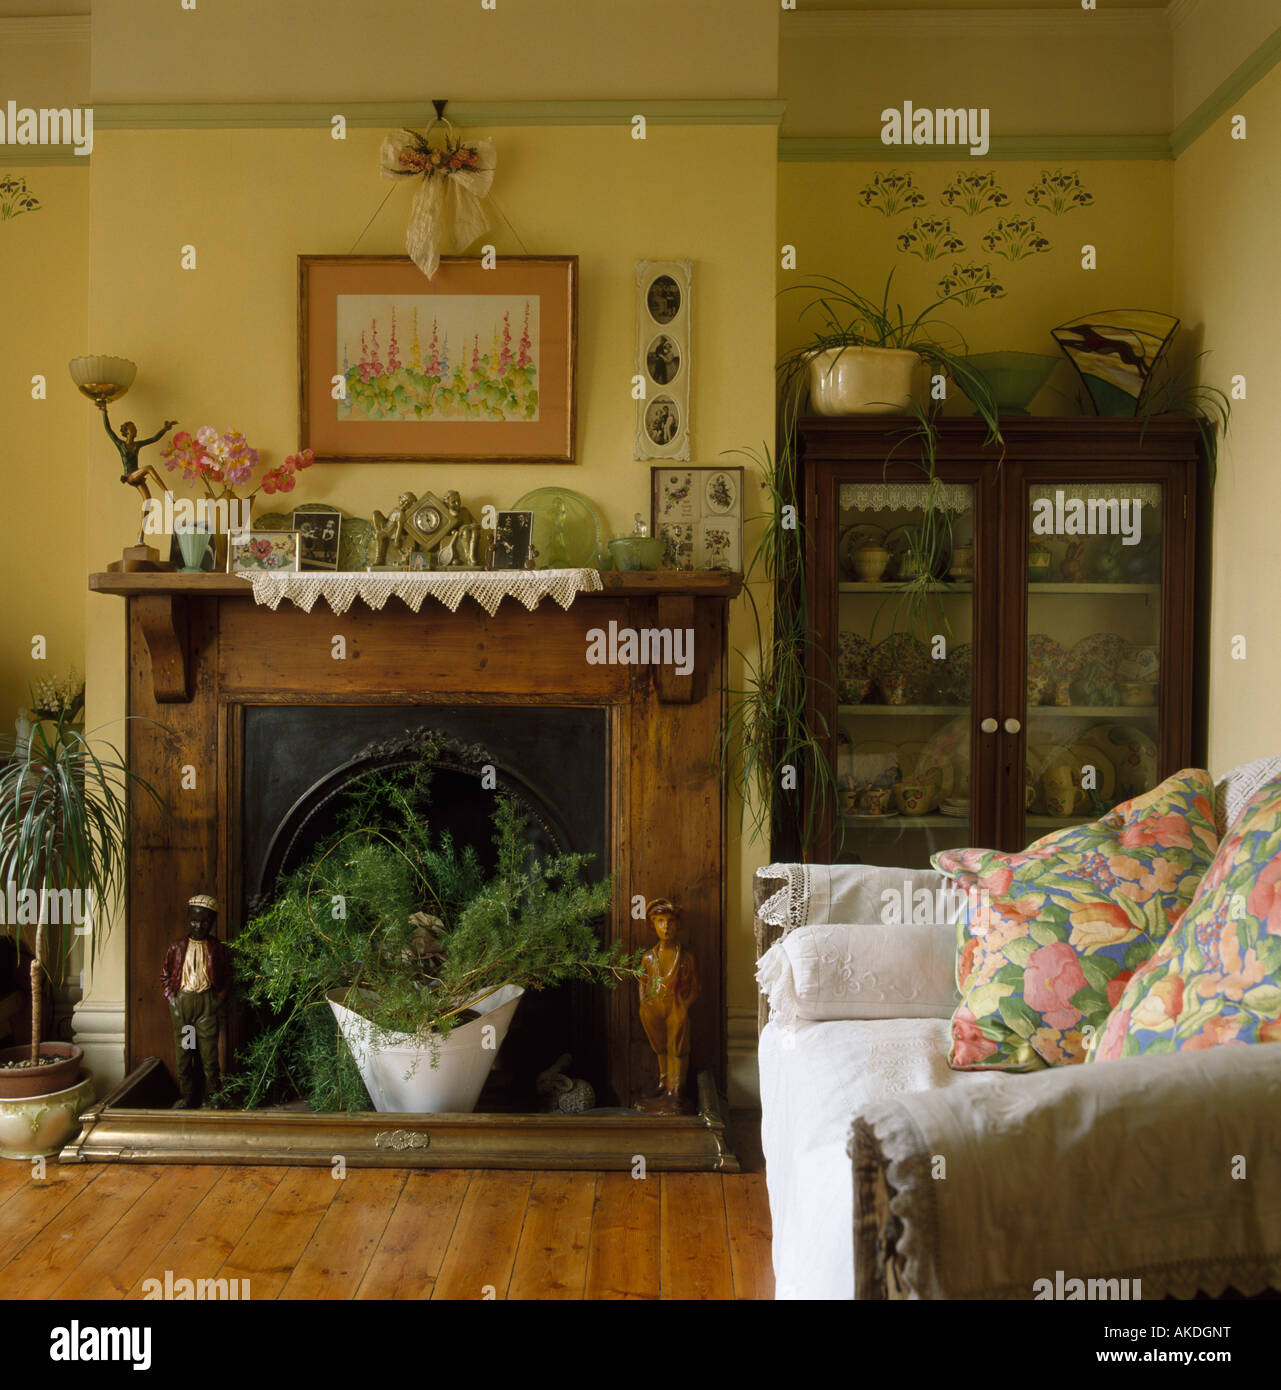 houseplants in fireplace with wooden mantelpiece in small yellow